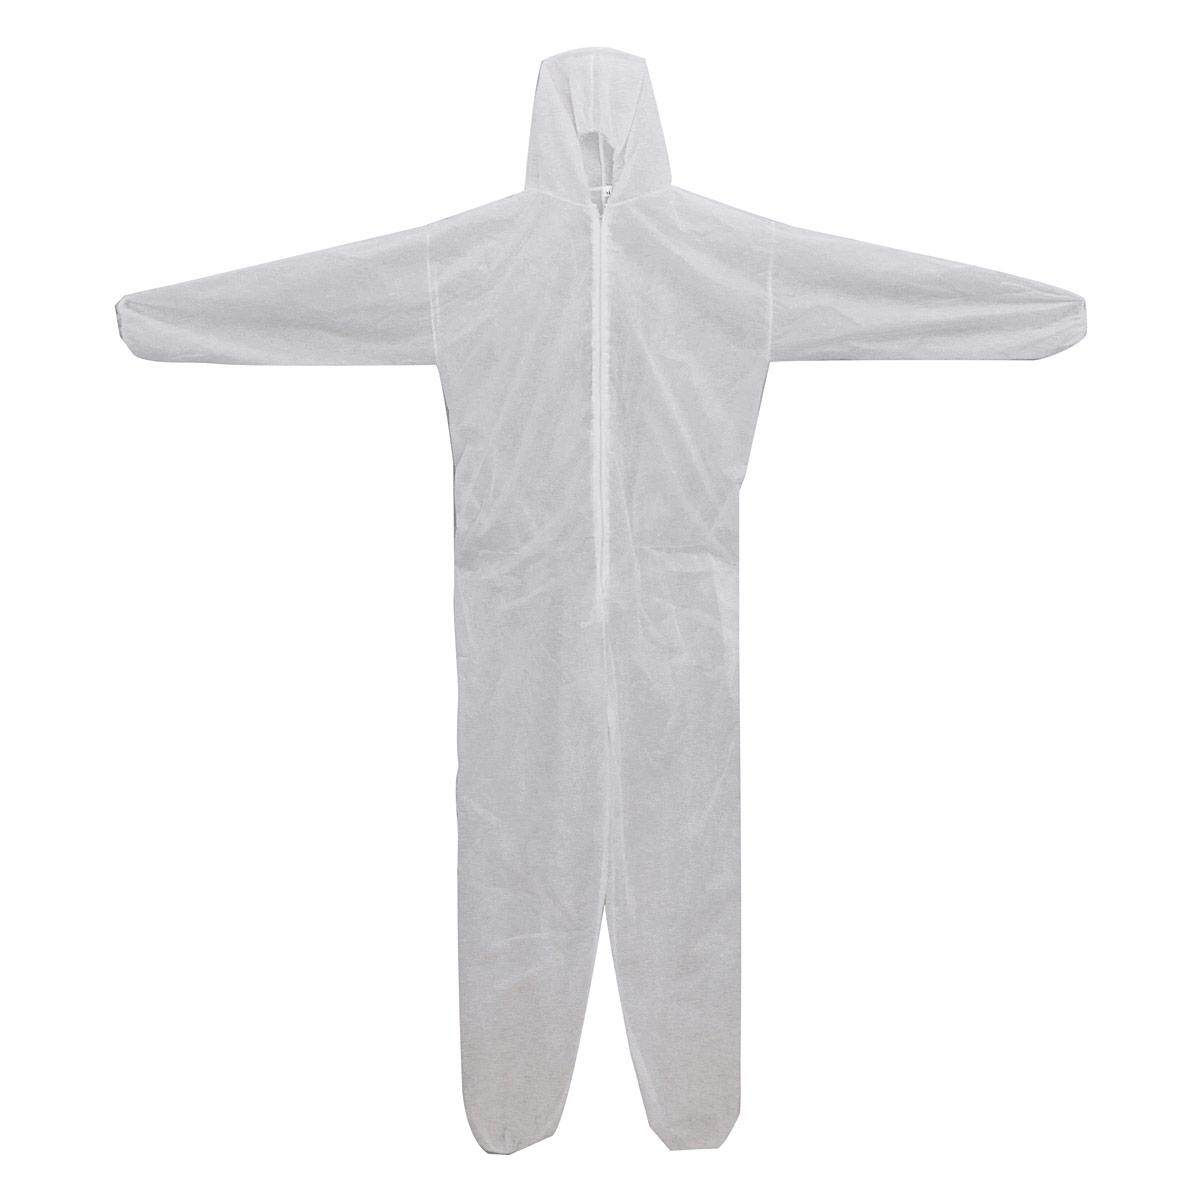 White Disposable DIY Overall Suit Protective Hood Coverall Work Clothes XXXL